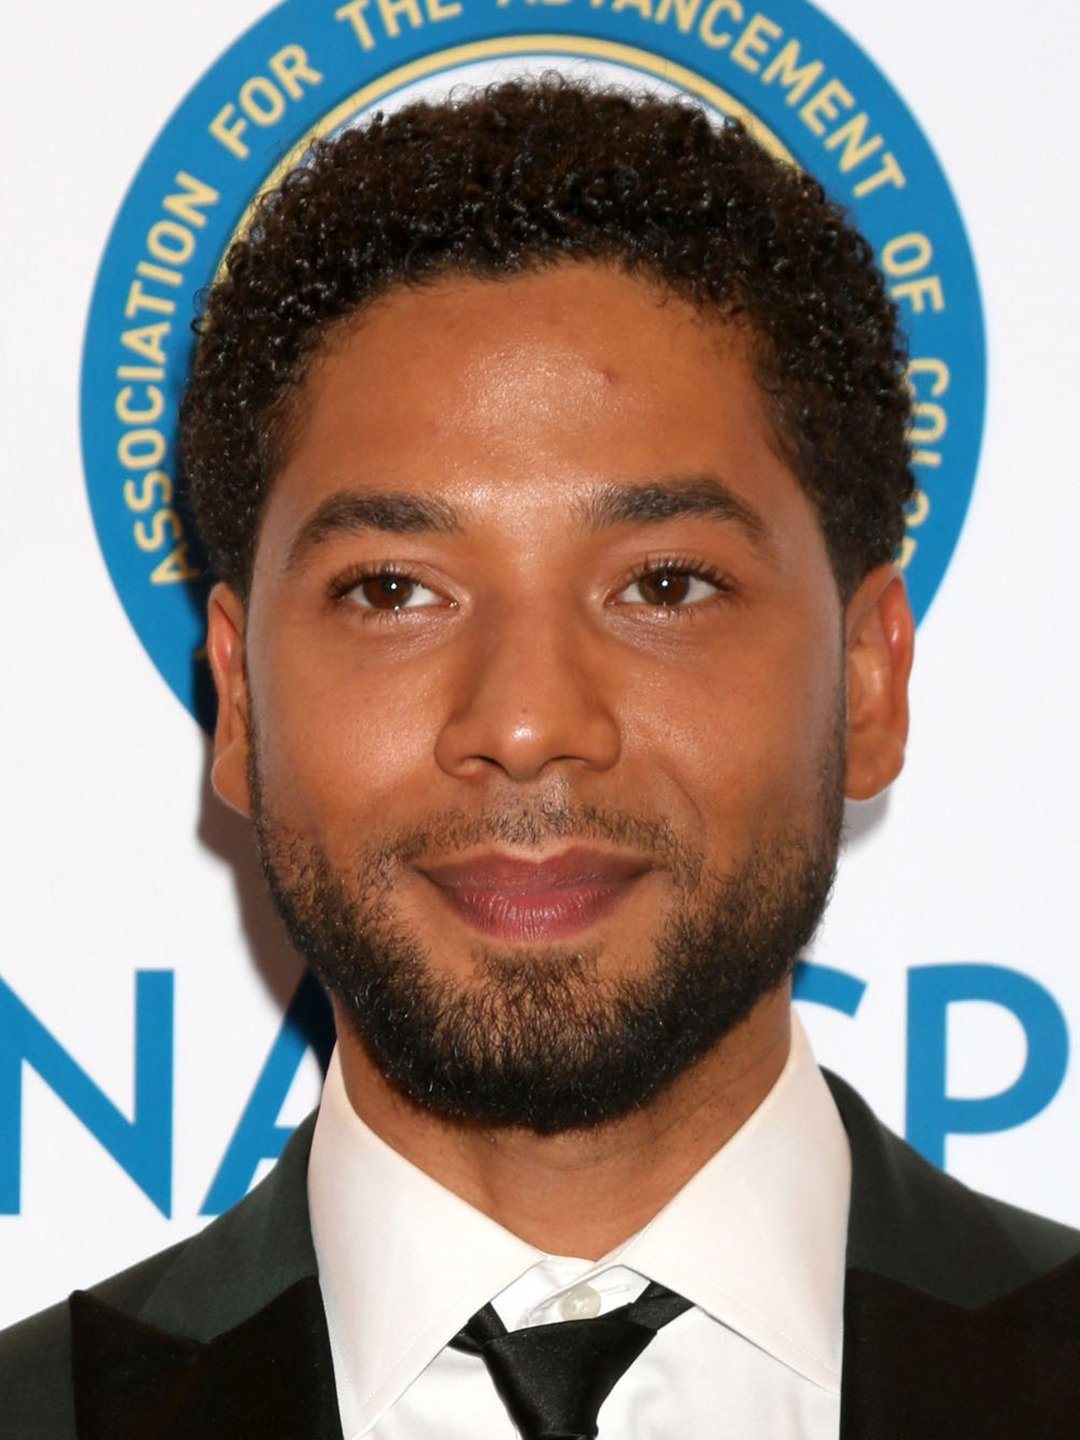 JUSSIE SMOLLETT: THE LEFT'S NEW POSTER CHILD